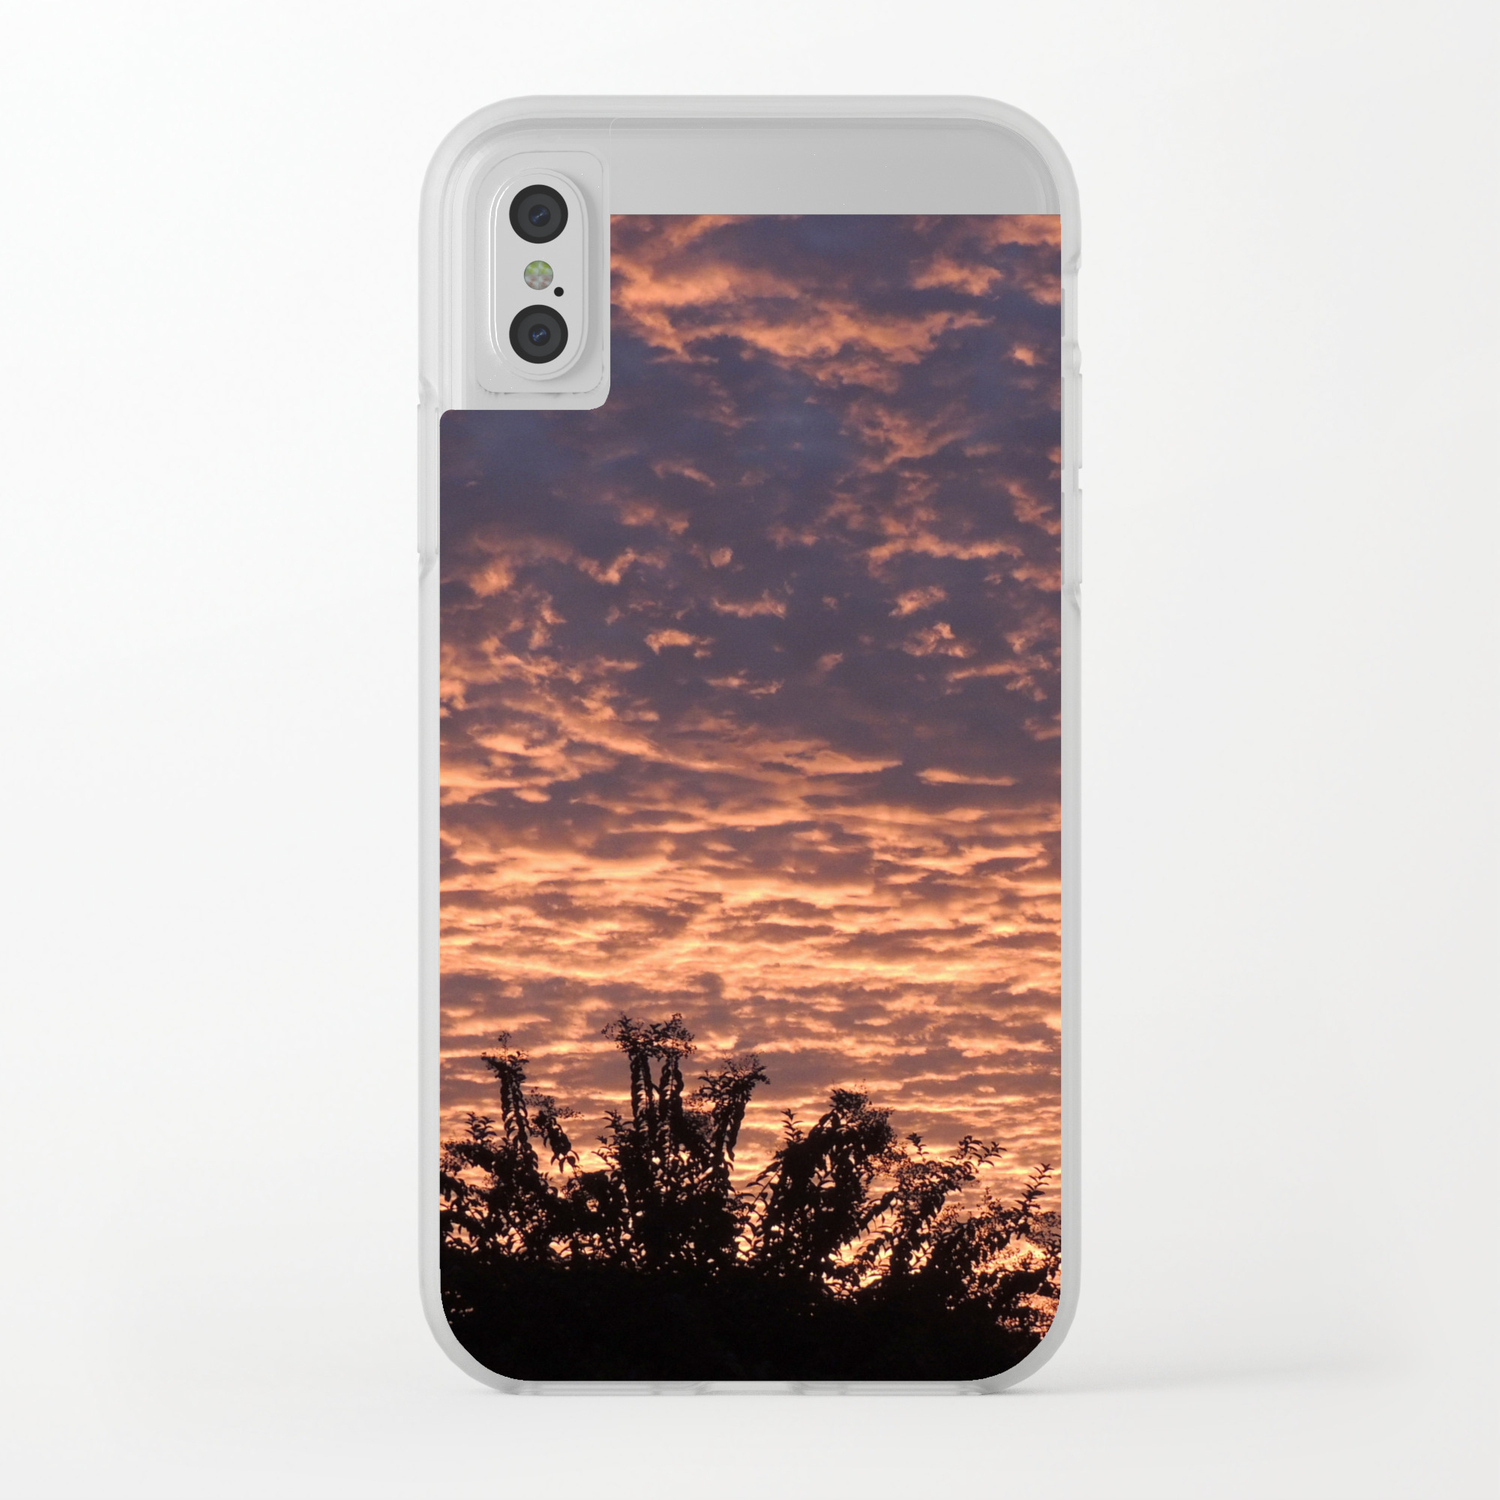 new product 8fbf9 75b92 Atmospherics Number 2: Sunset from Costco San Dimas Clear iPhone Case